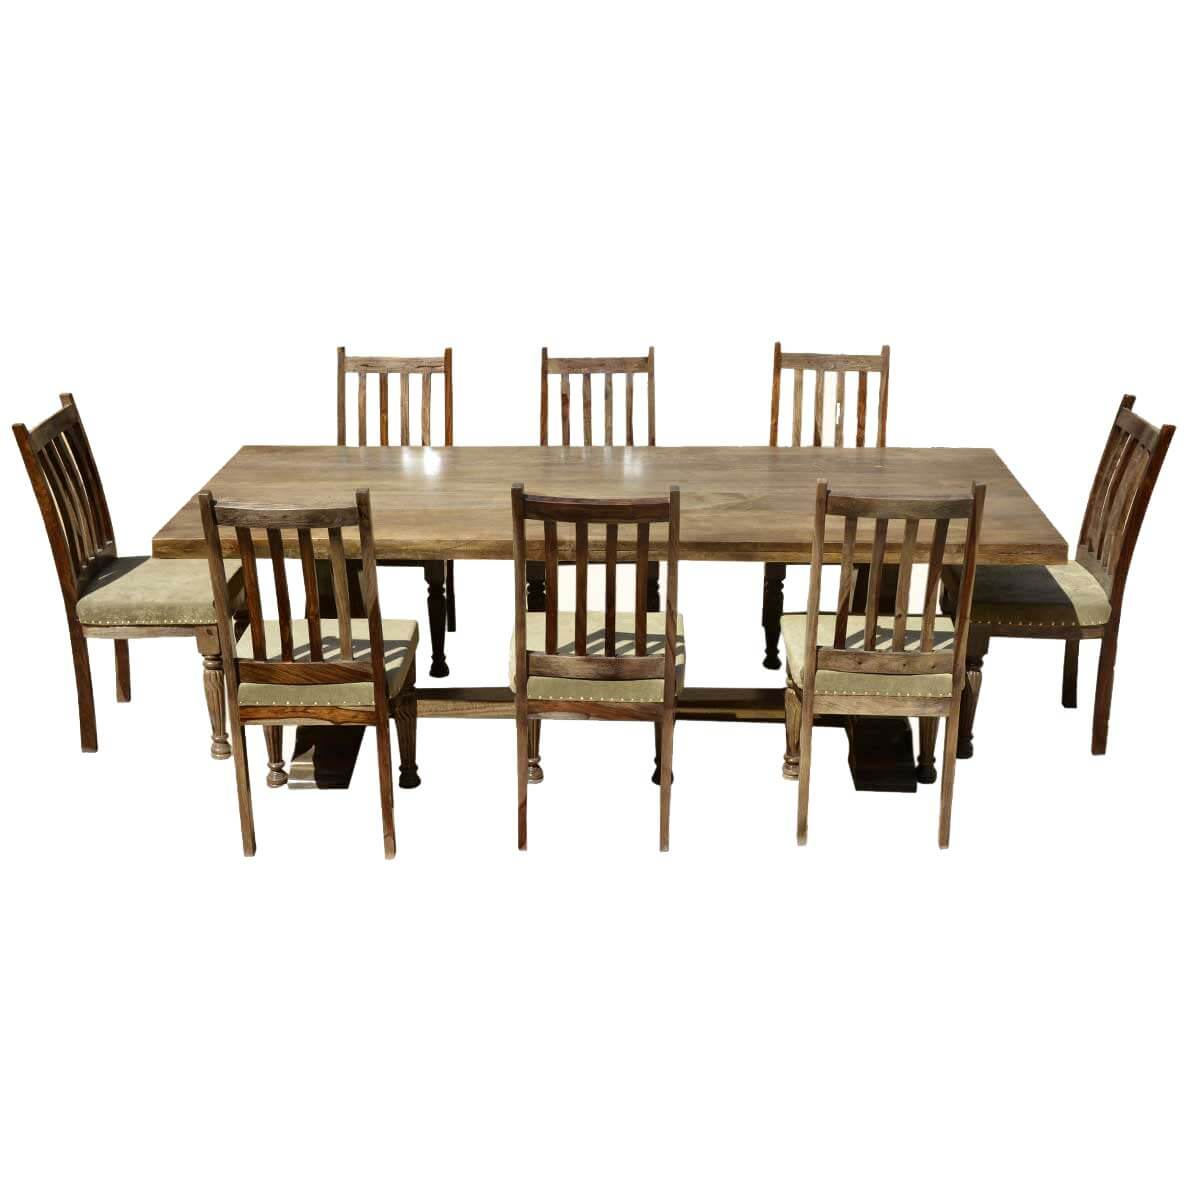 Farmhouse solid wood trestle rustic dining table for Dining room table and bench set